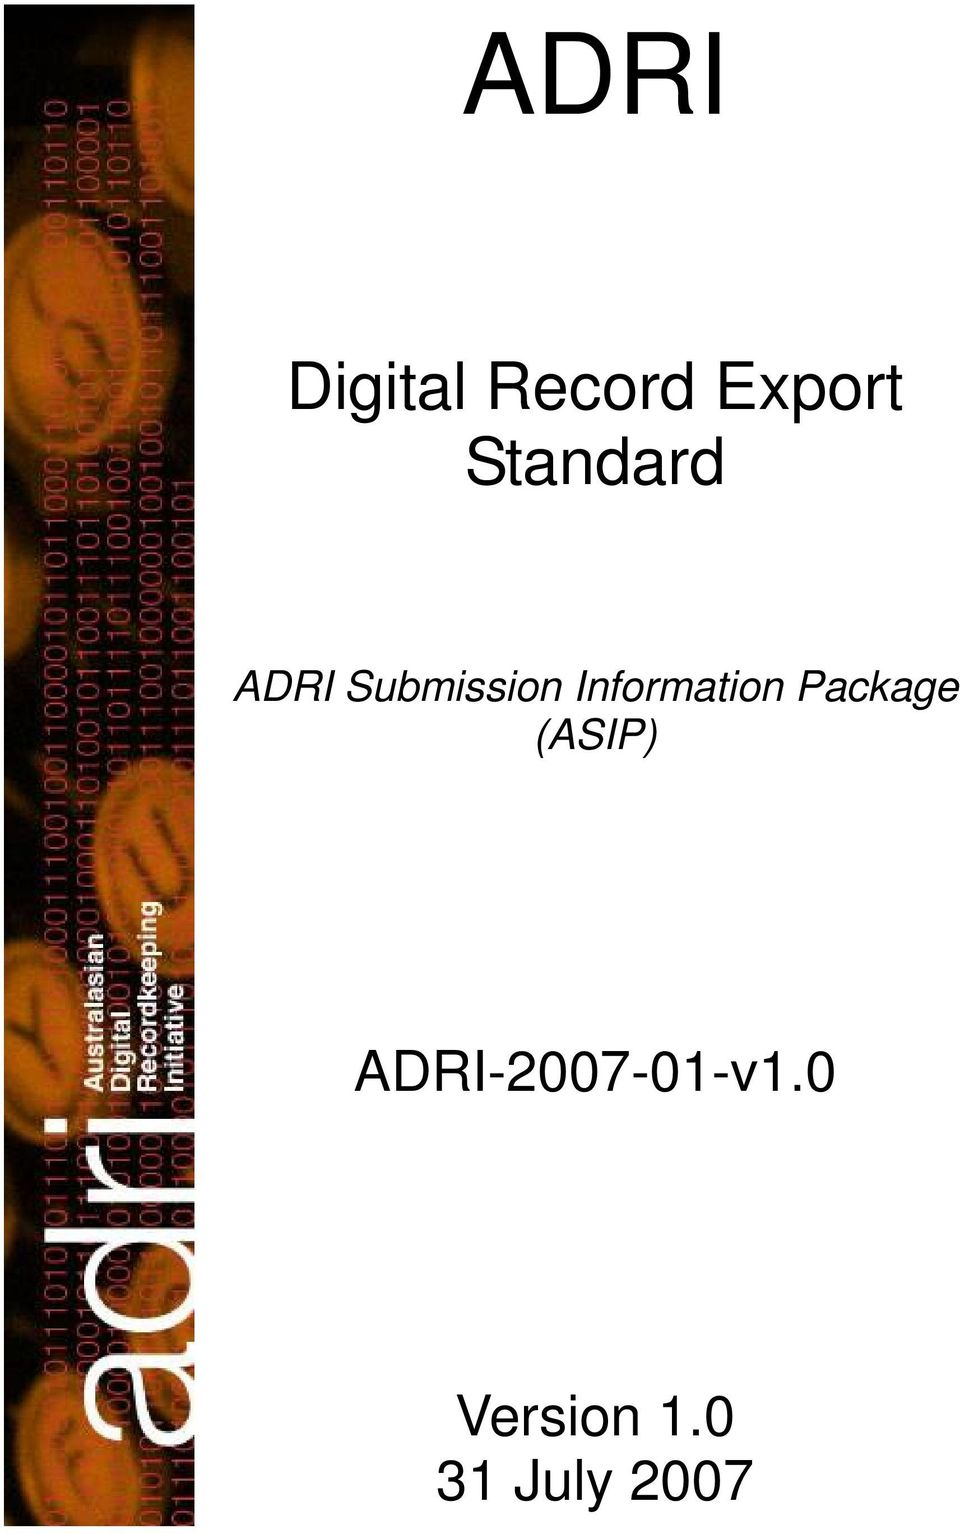 Information Package (ASIP)